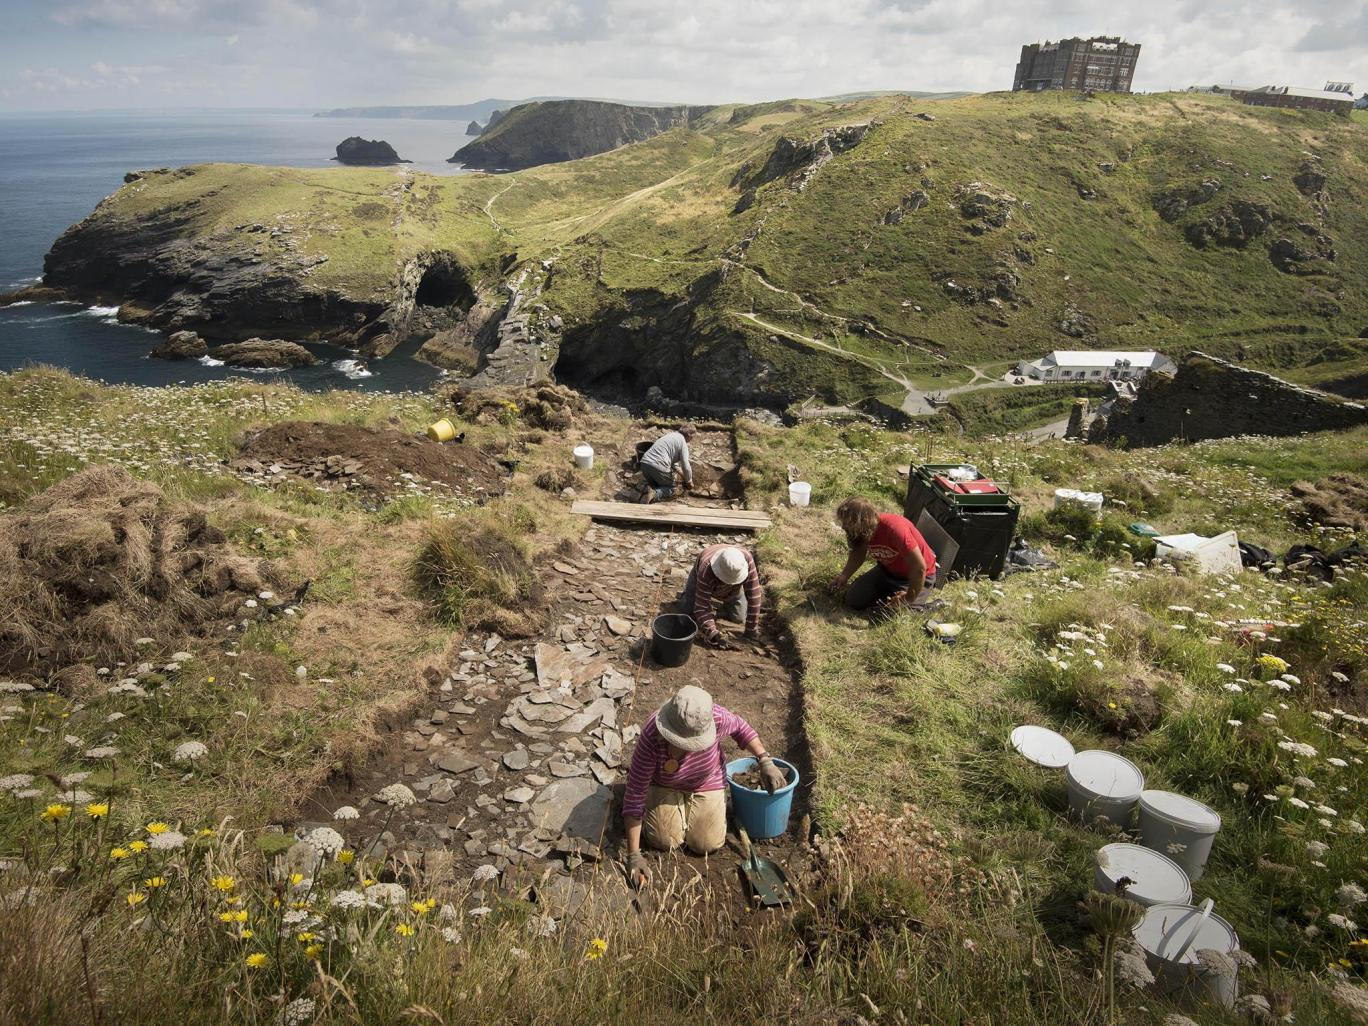 The excavation set out to find more about Tintagel's past which is believed to date back to the 5th and 6th centuries Emily Whitfield-Wicks